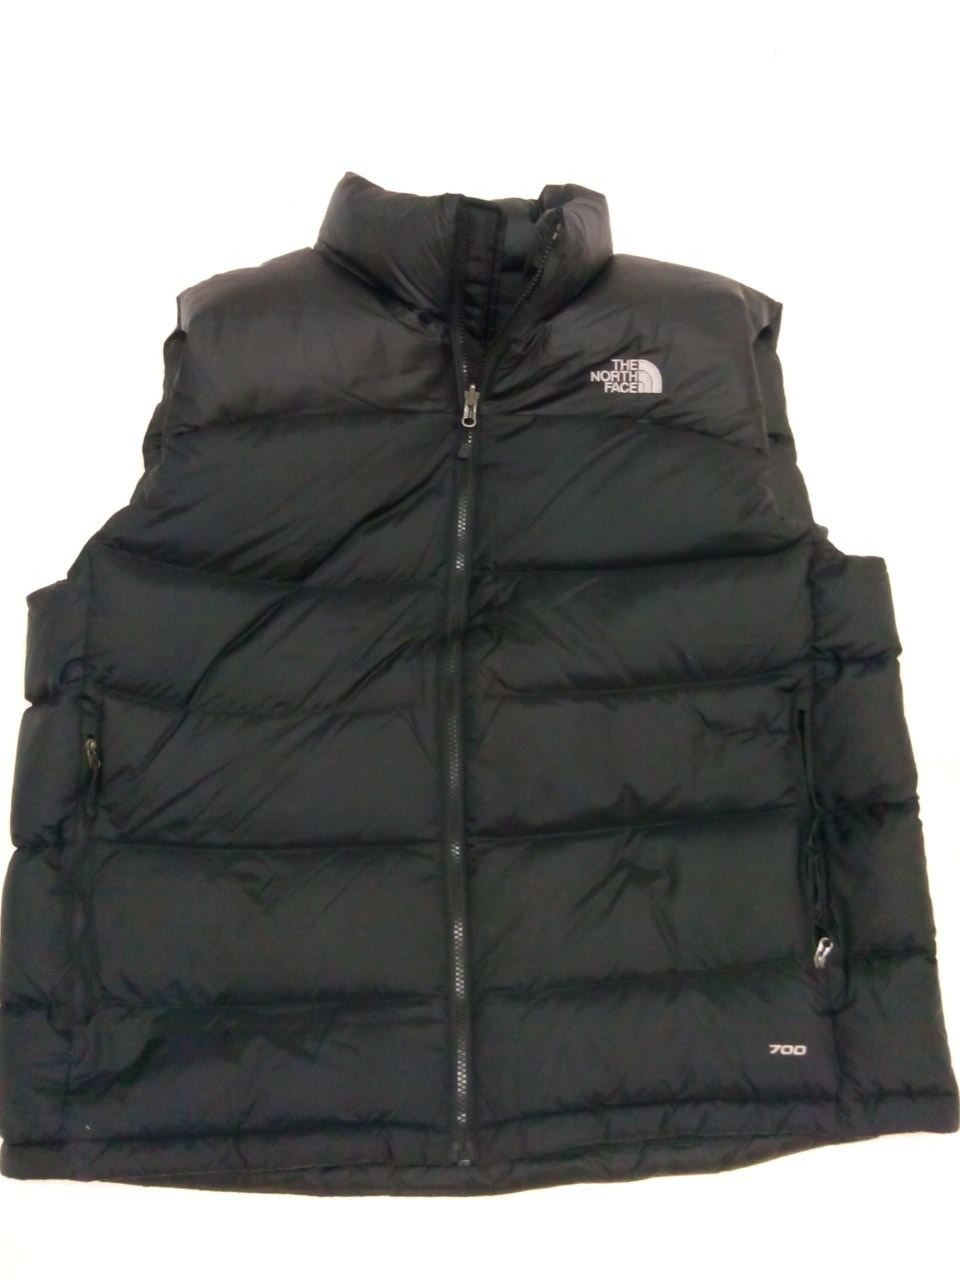 the north face men 39 s nuptse 2 vest many sizes. Black Bedroom Furniture Sets. Home Design Ideas